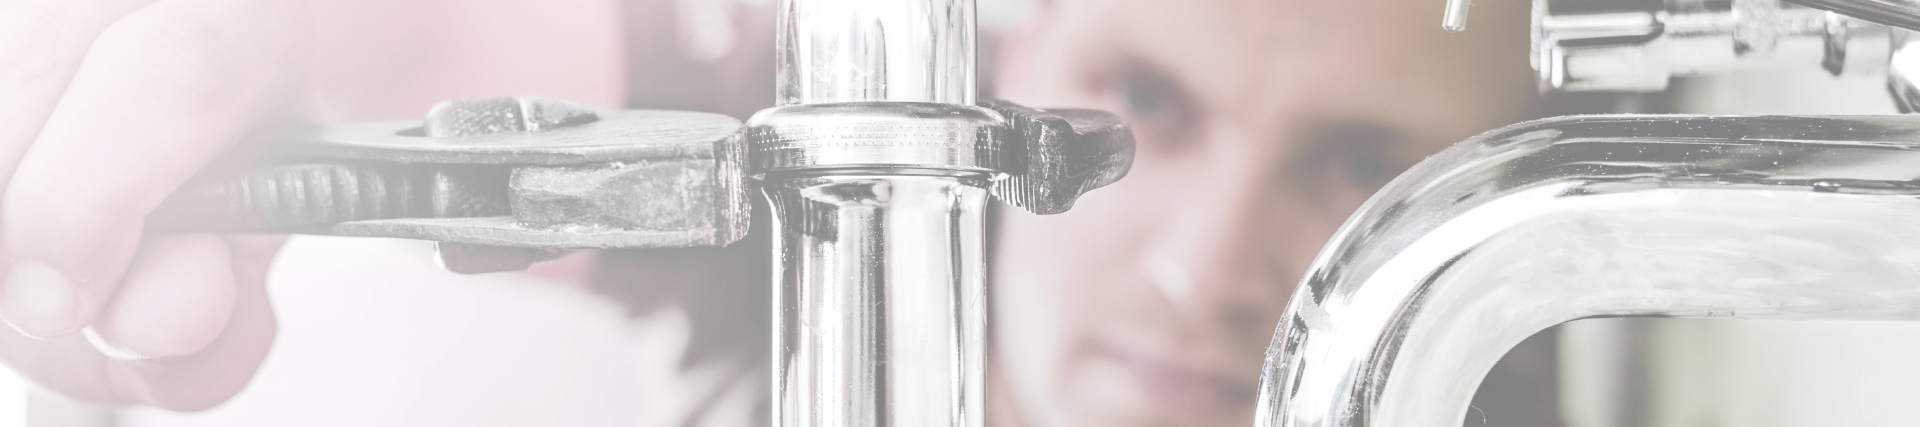 Central Coast Plumbing Services